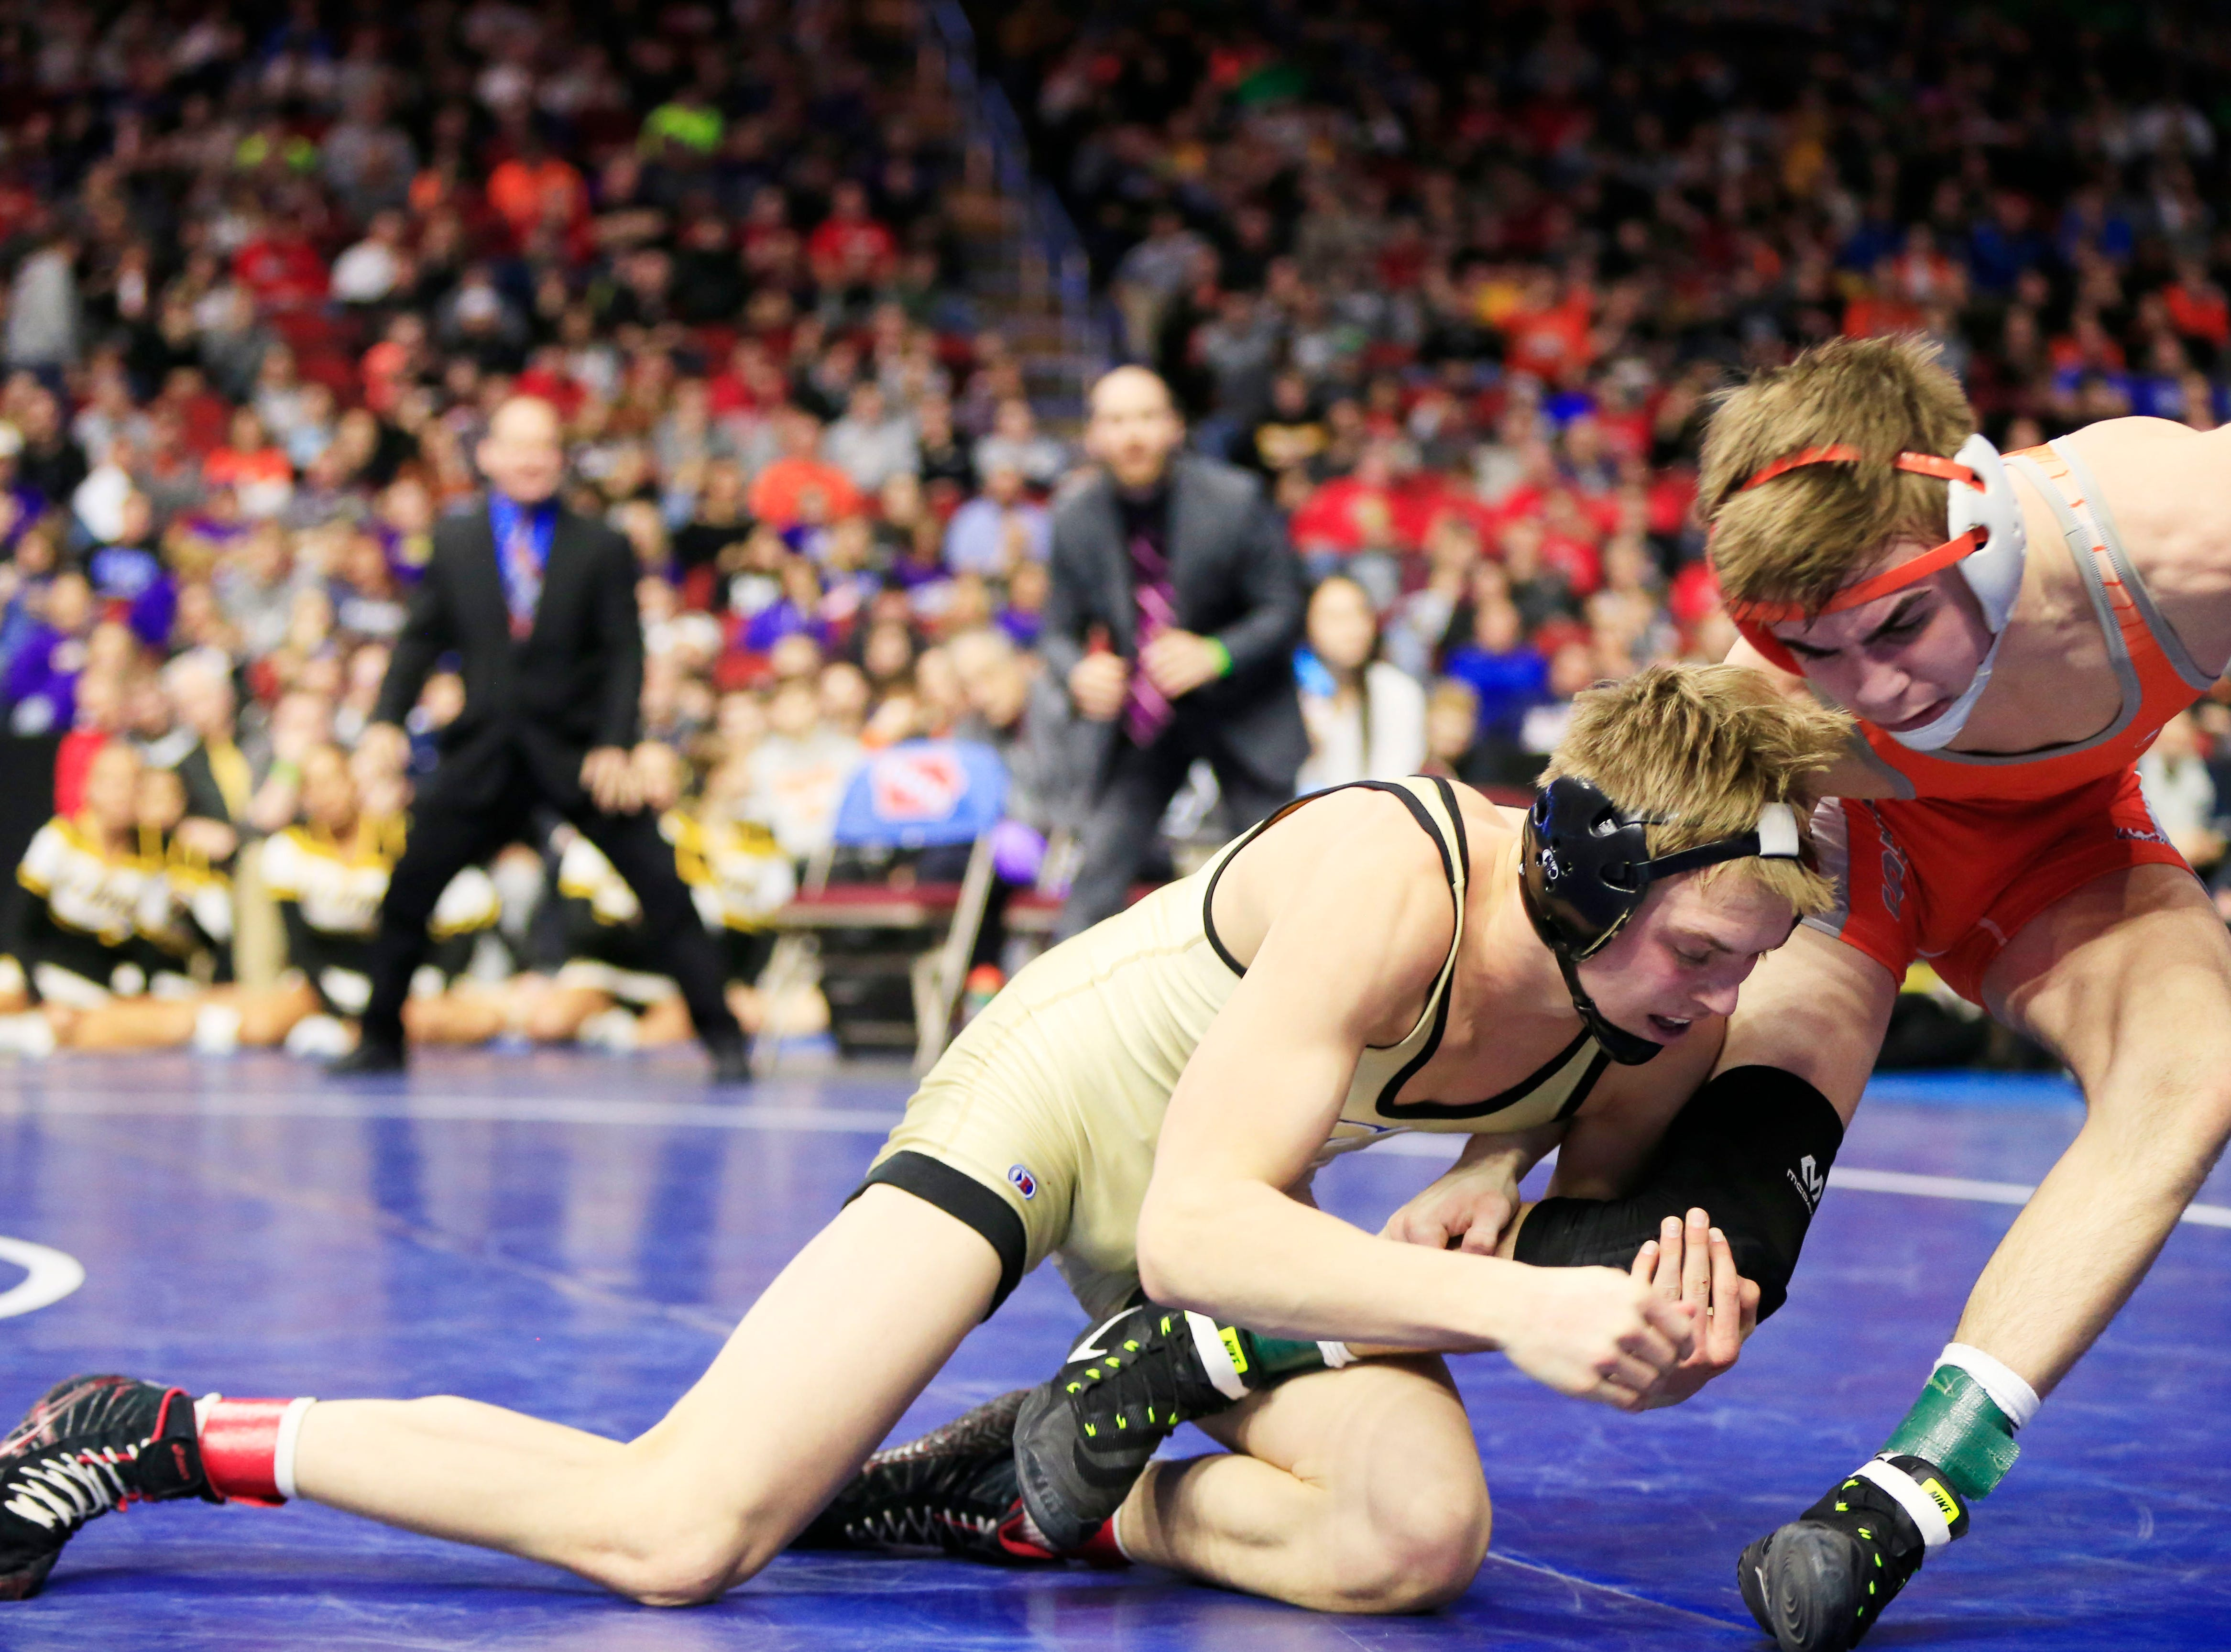 Eric Faught of Clear Lake beats Jack Gaukel of Sergeant Bluff-Luton for the 2A state championship at 132 pounds Saturday, Feb. 16, 2019.